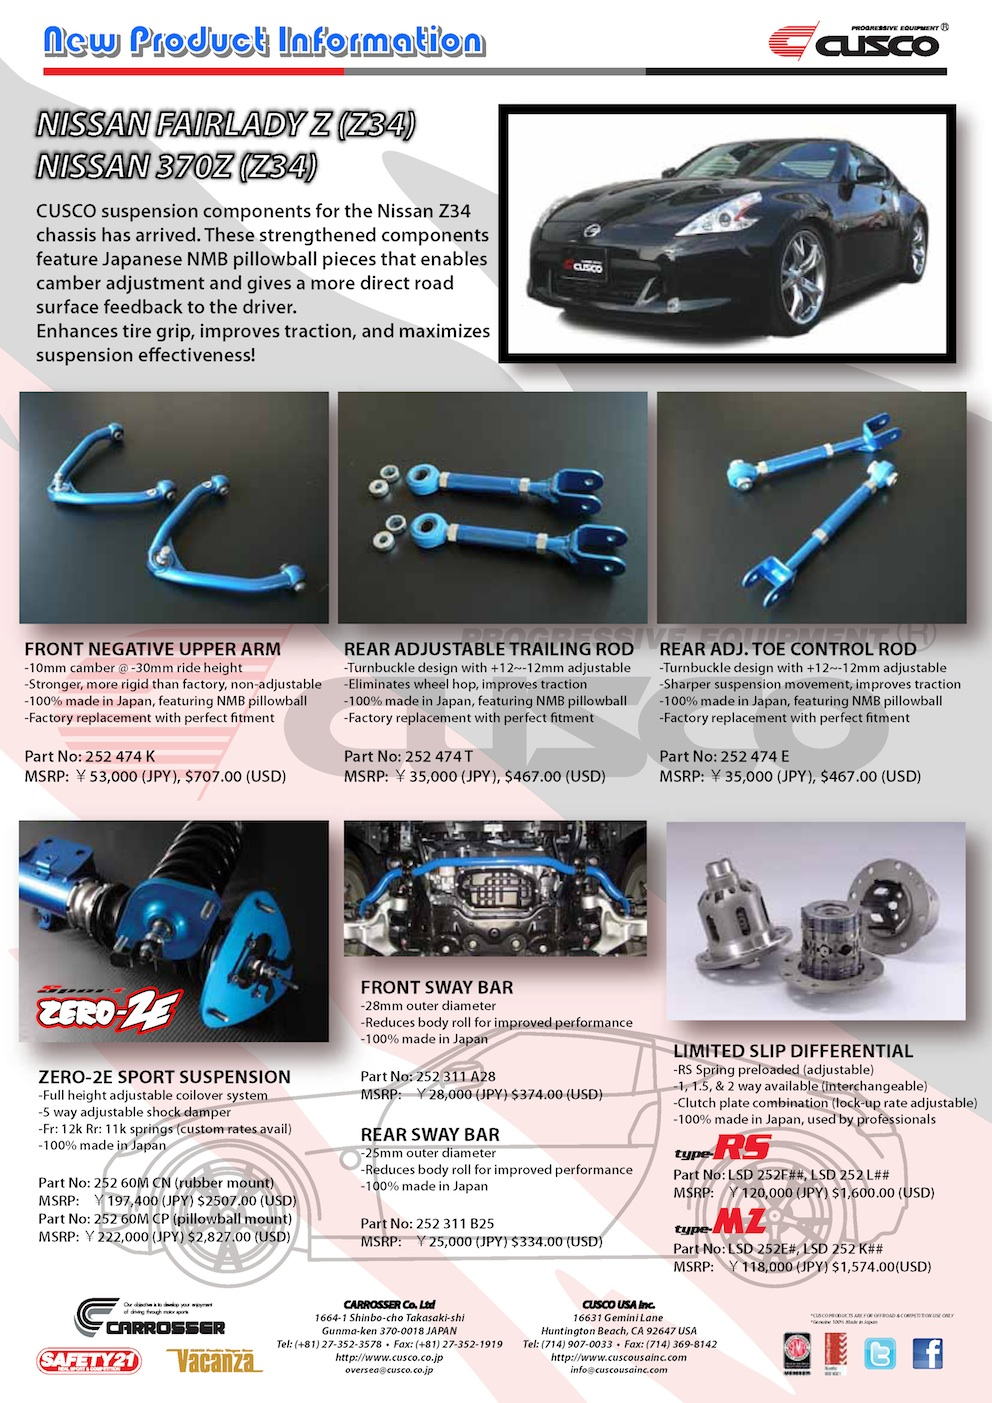 Nissan FairladyZ 370z (Z34) Suspension Products